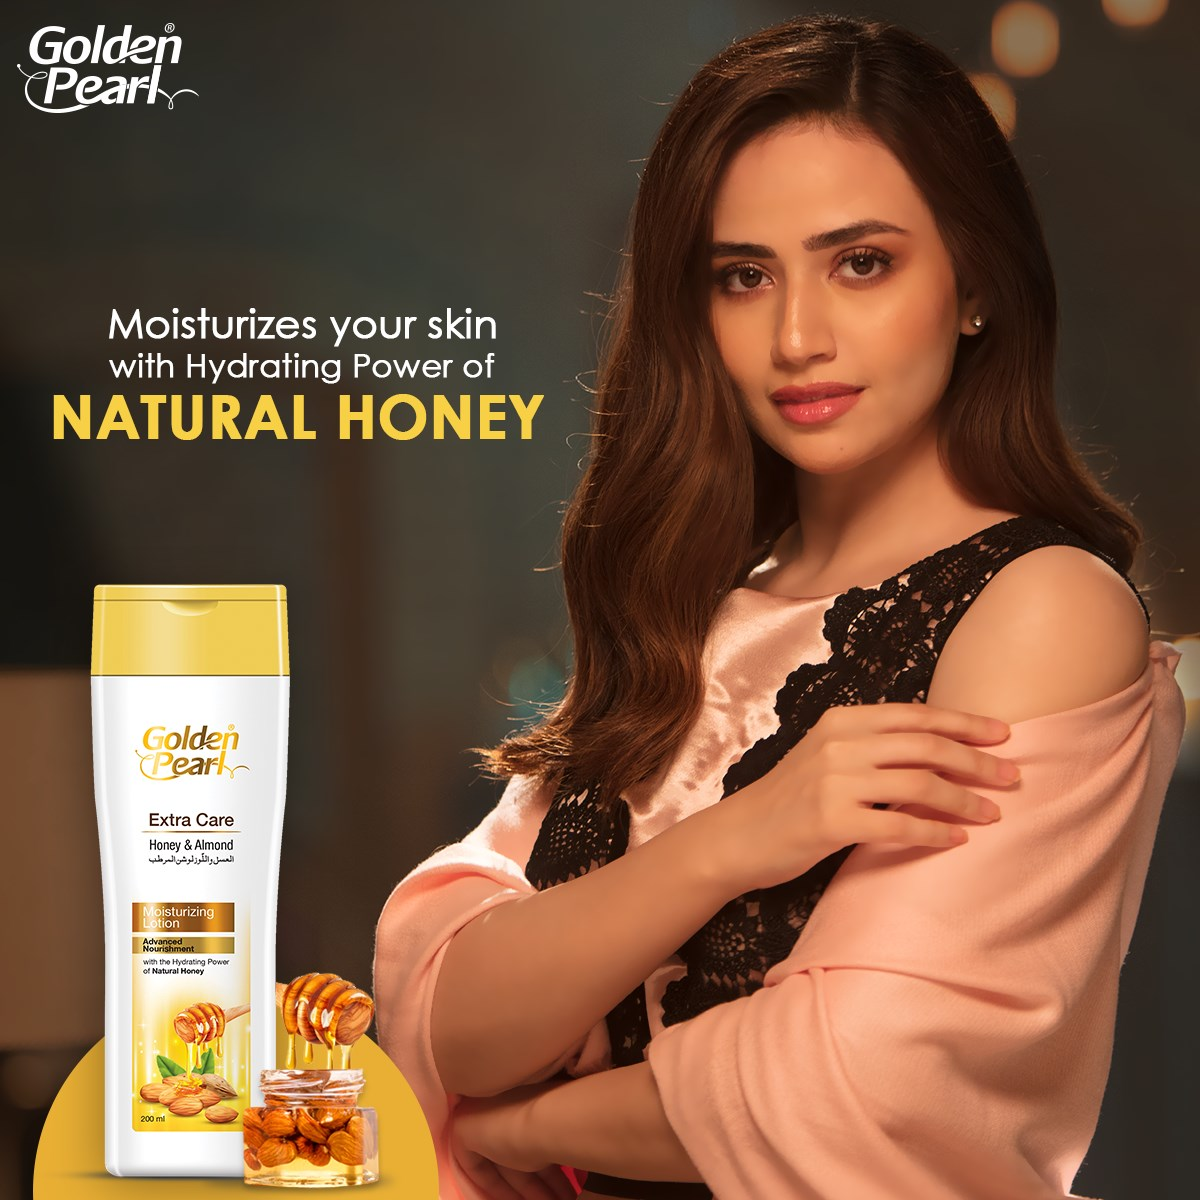 Golden Pearl Extra Care Honey & Almond Moisturizing Lotion 200ml